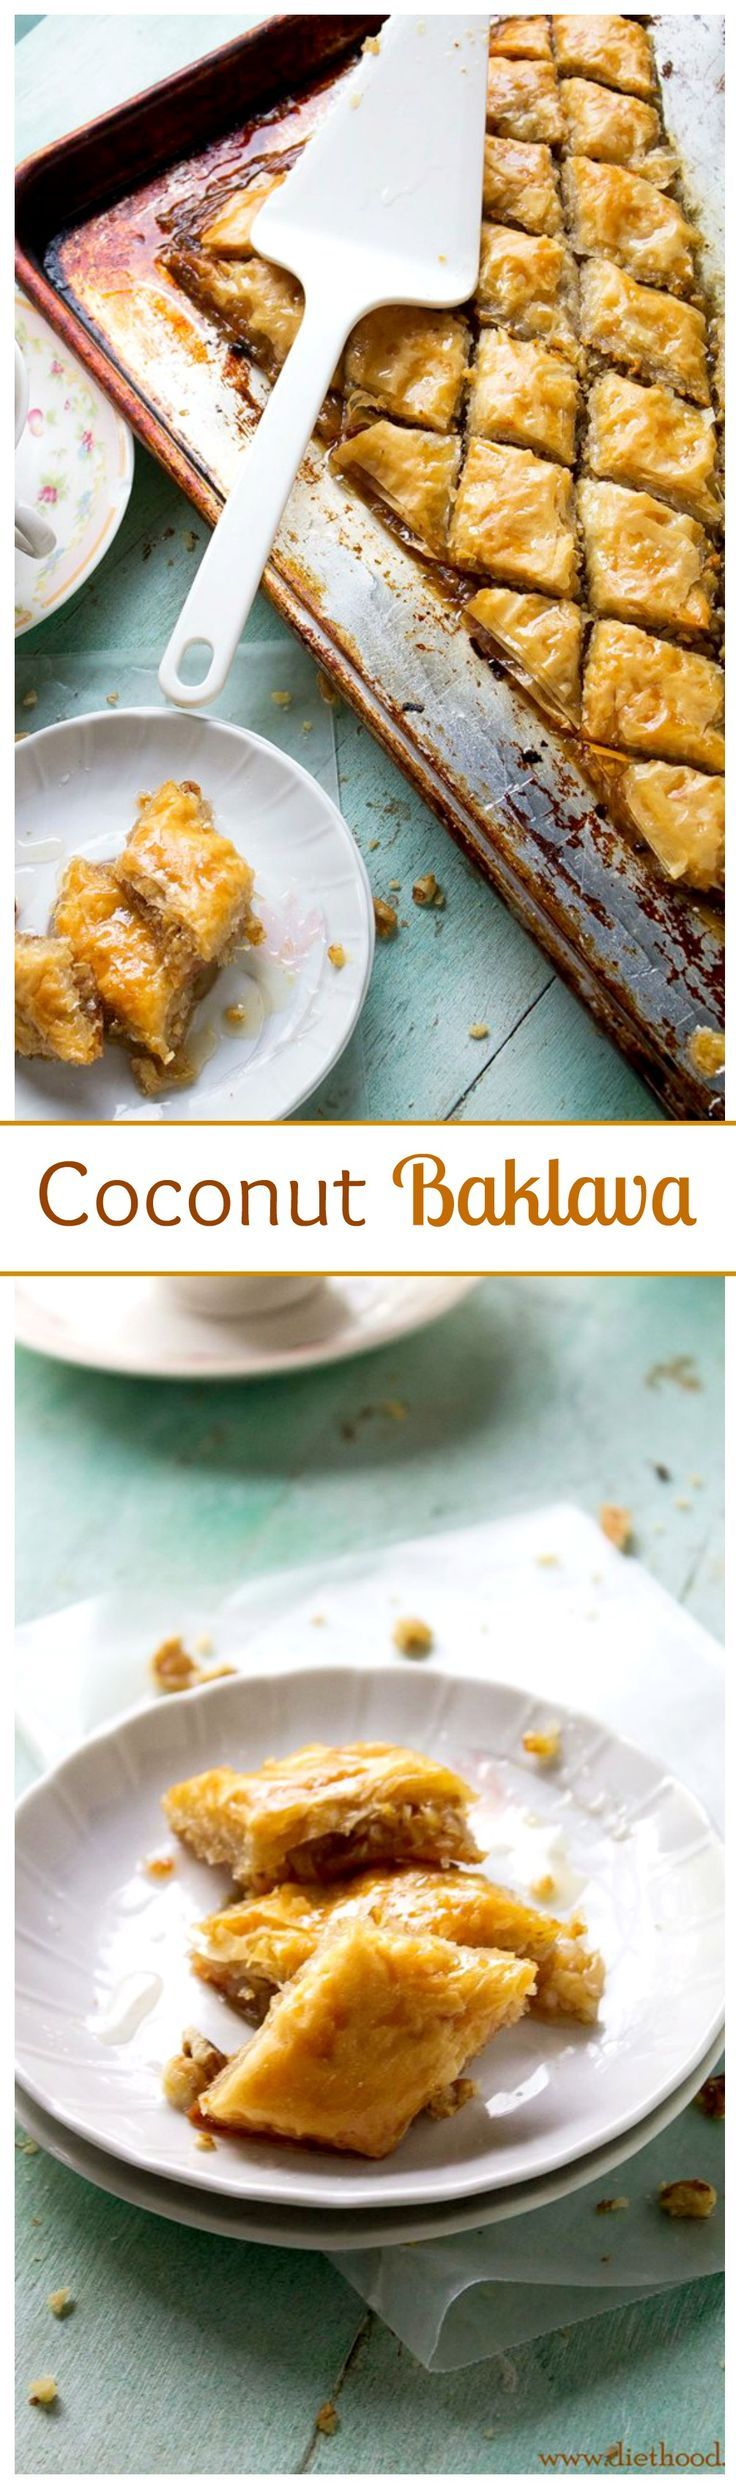 Layers of Phyllo sheets filled with a delicious mixture of shredded coconut and walnuts.